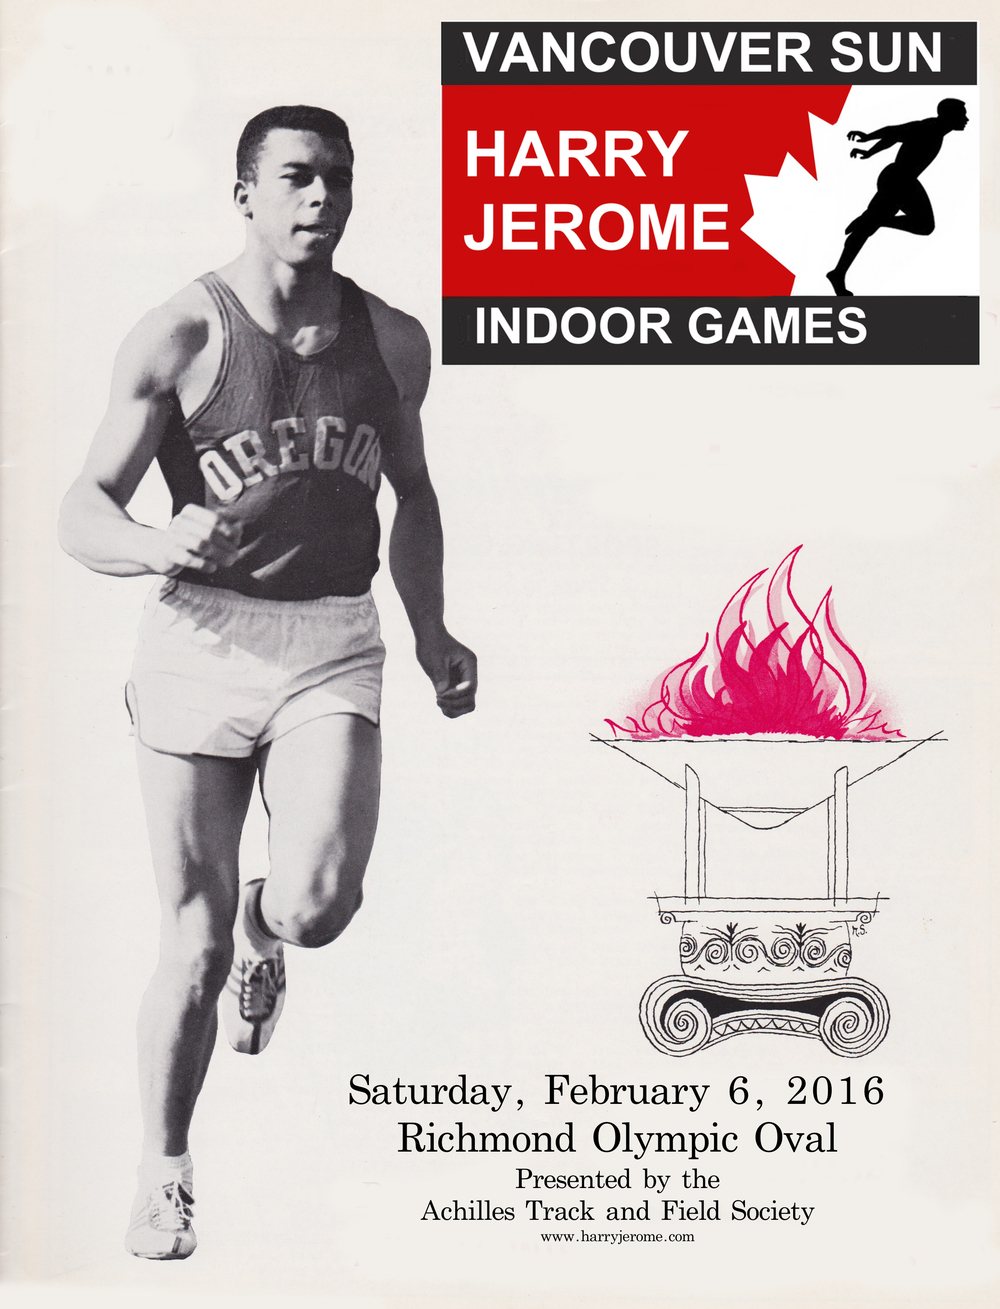 Last year over 400 athletes of all ages participated in this competition on the 200m indoor track. The Richmond Olympic Oval facility is a legacy of the 2010 Winter Olympic Games. The inaugural event in 2011 was the first indoor track and field event held in Metro Vancouver for almost 40 years. The Jerome Indoor Games provides opportunity for athletes of all ages from 10 yrs. to 70+ years on the 5 lanes of the 200m Pulastic track.  This competition is an important step towards the 2016 Rio Olympic Games set for this August and for all young athletes with the dream of wearing the Maple Leaf sometime in the future. Information for entry is available at www.harryjerome.com Entries close on January 29, 2016. Early entries are advised, as space may be limited.